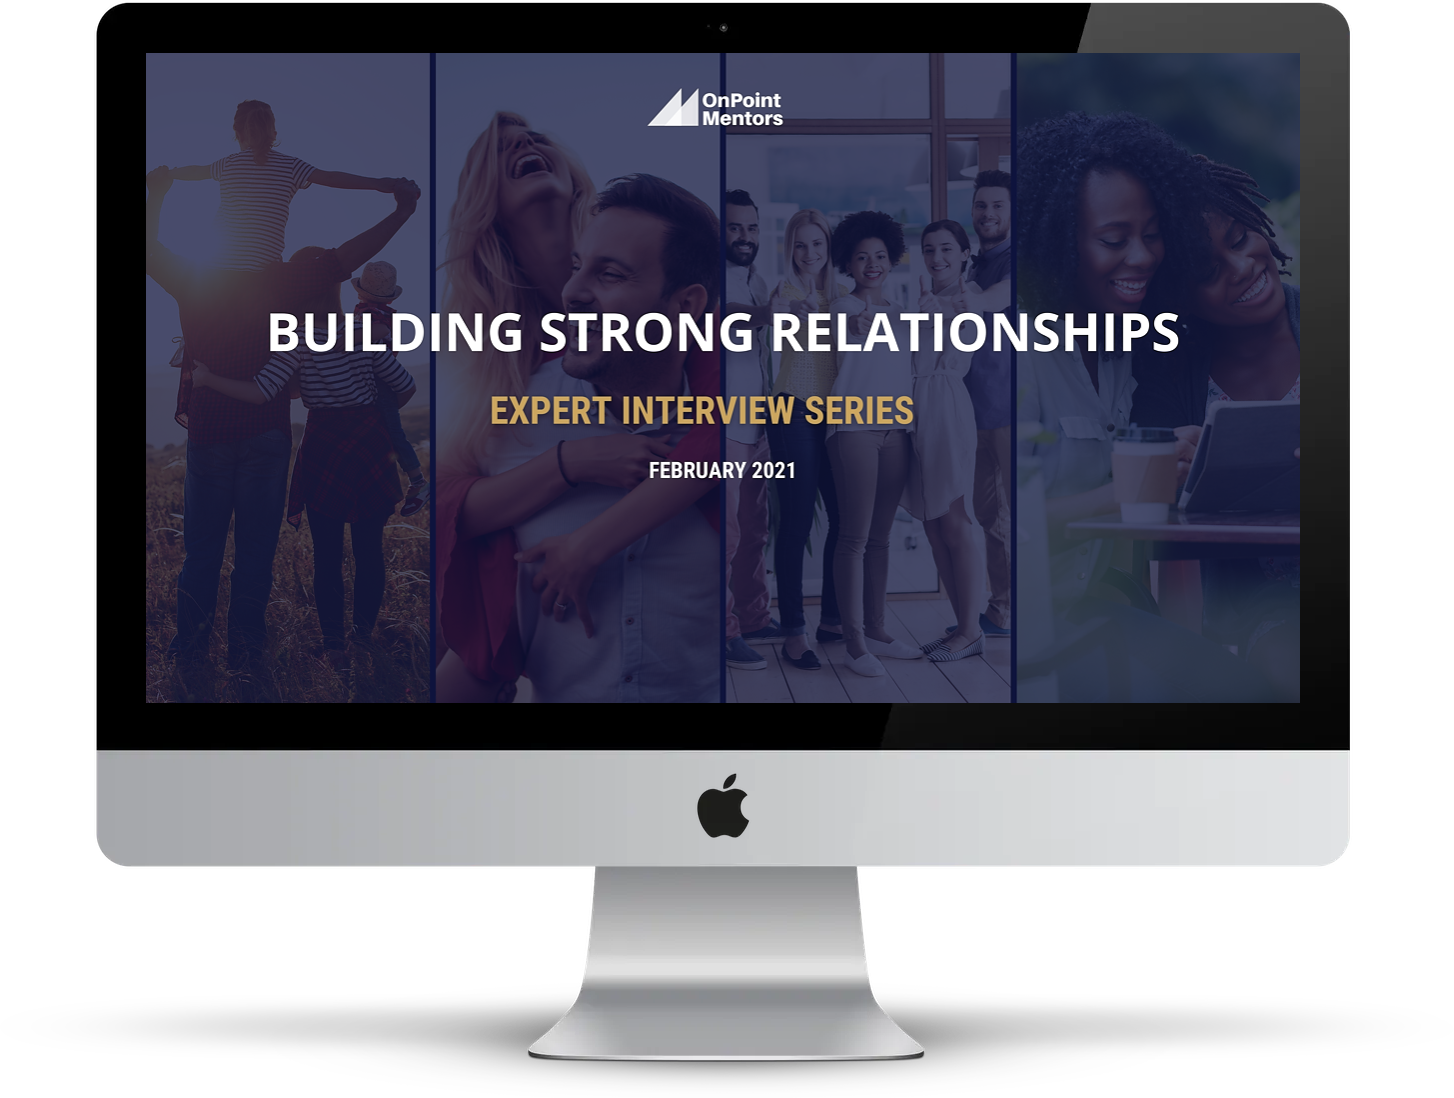 Building Strong Relationships